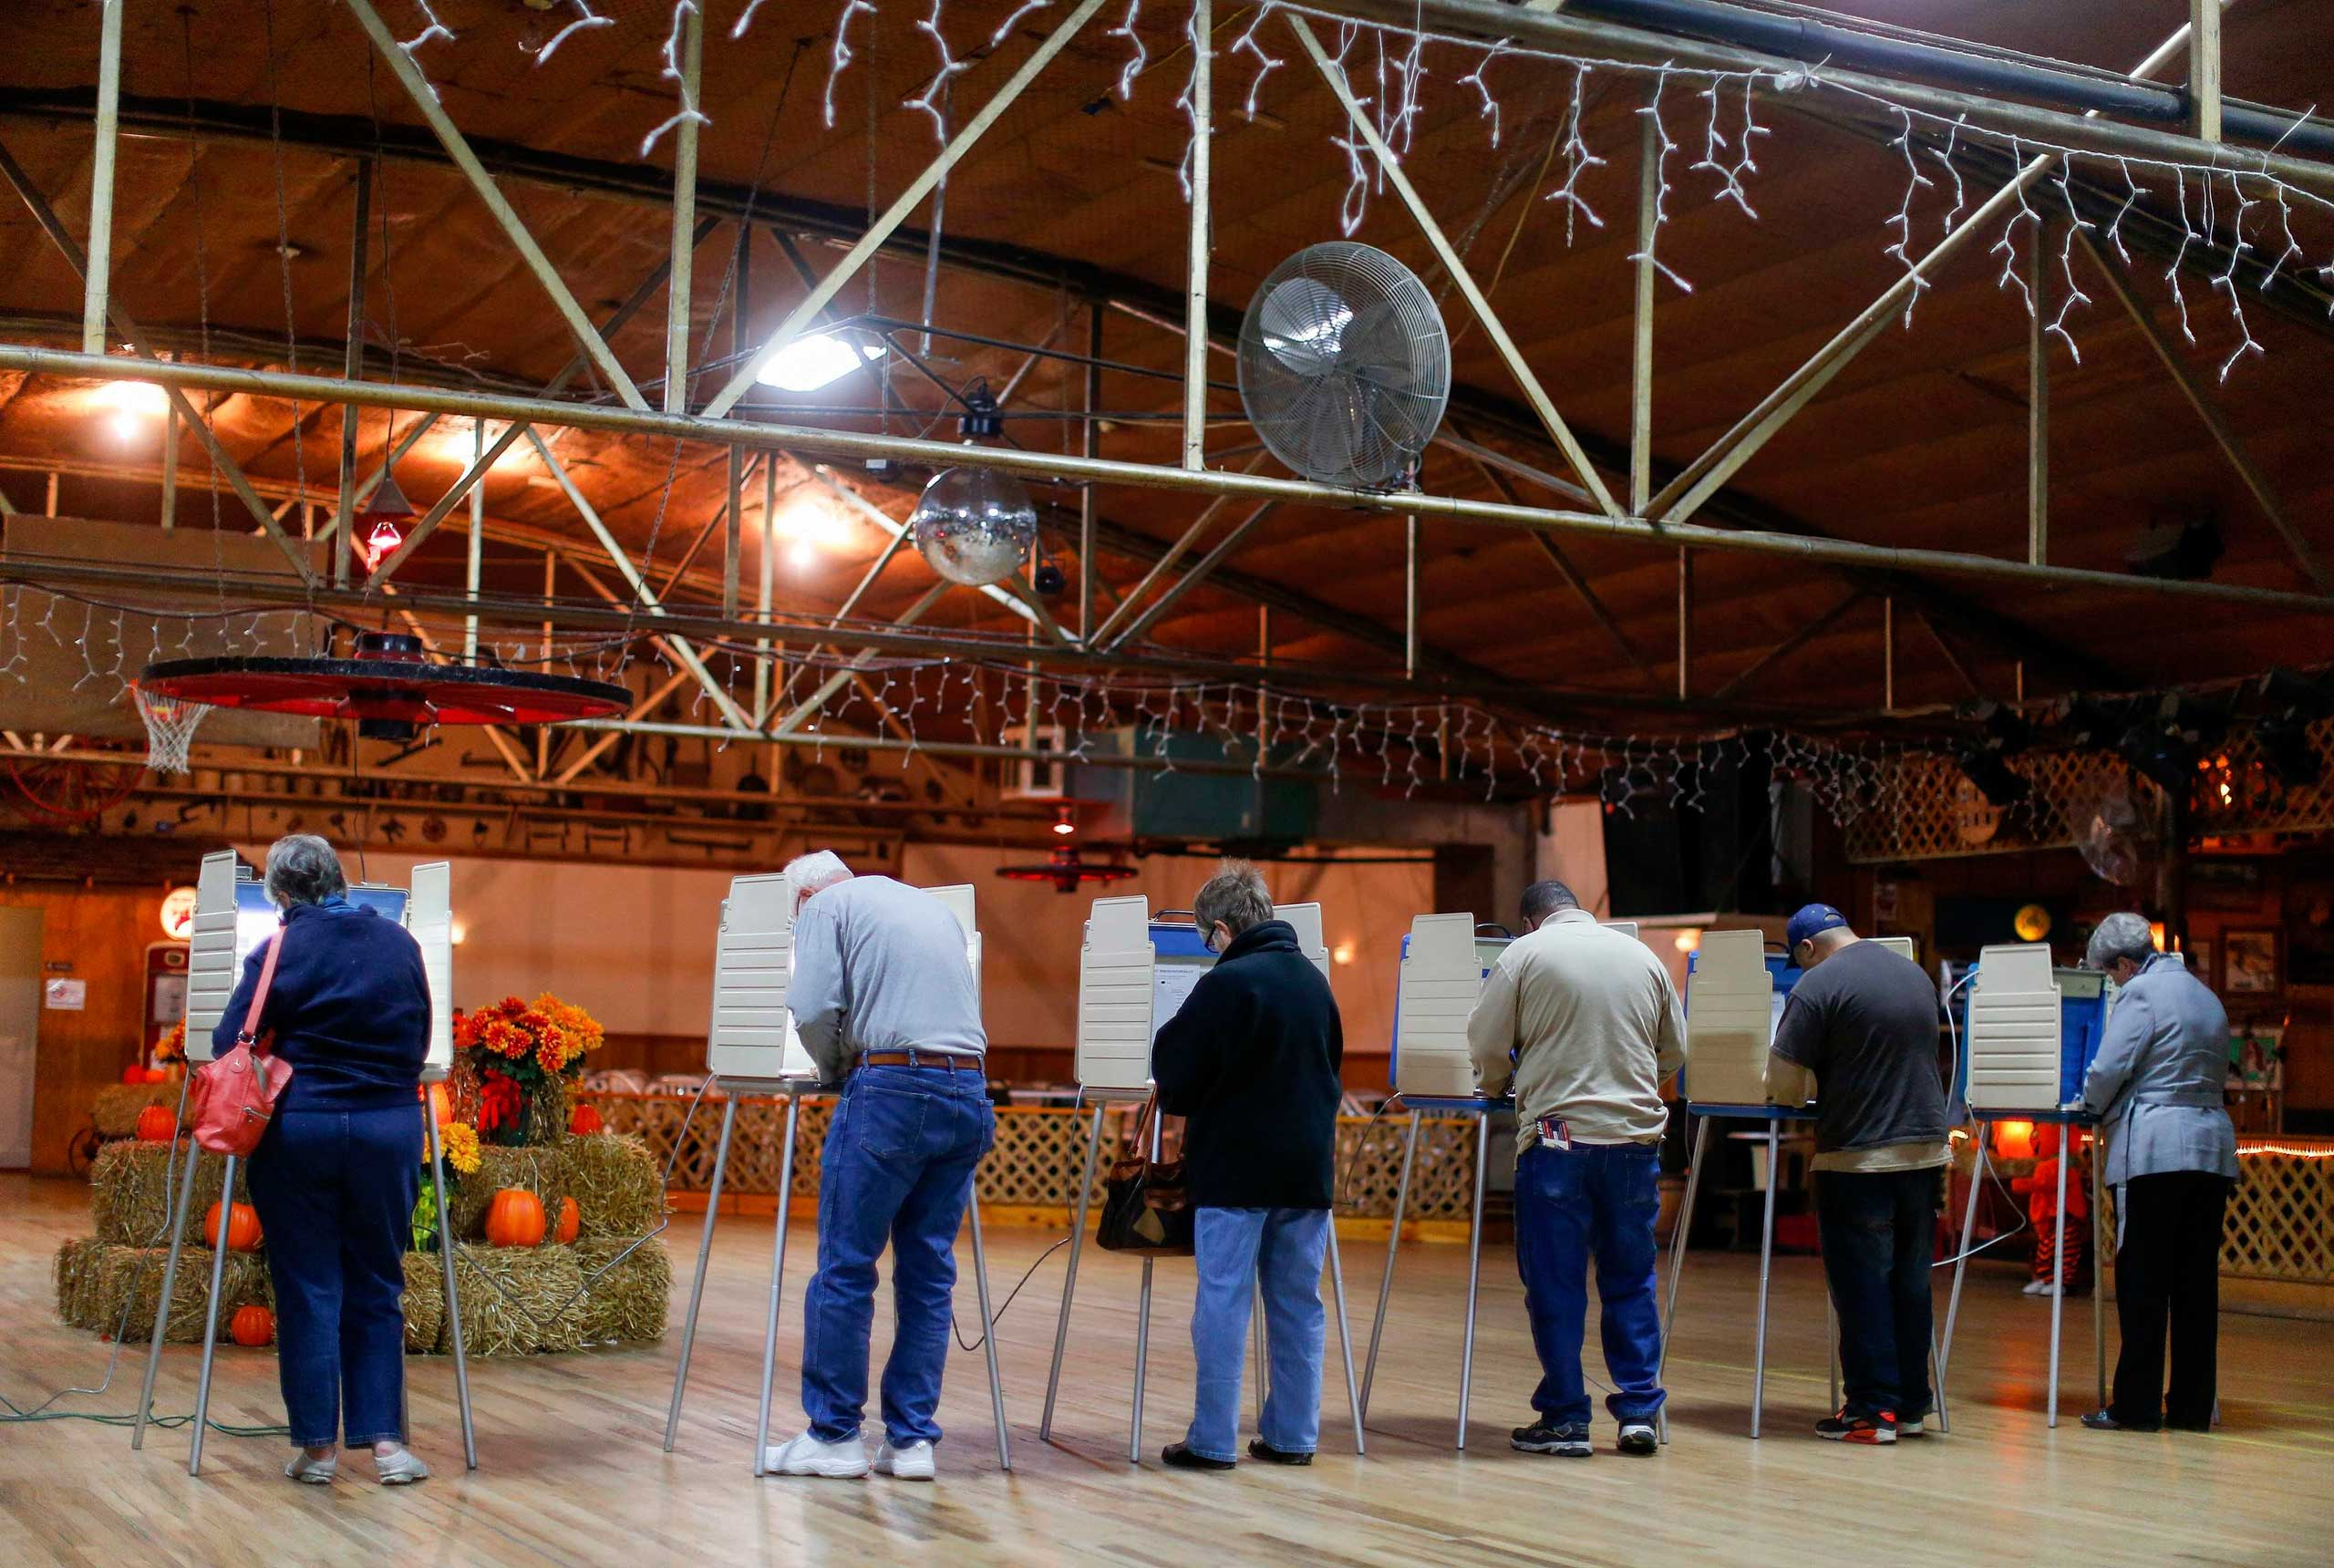 Voters fill in their ballots at a polling place located in Shoaf's Wagon Wheel in Salisbury, N.C. on Nov. 4, 2014.